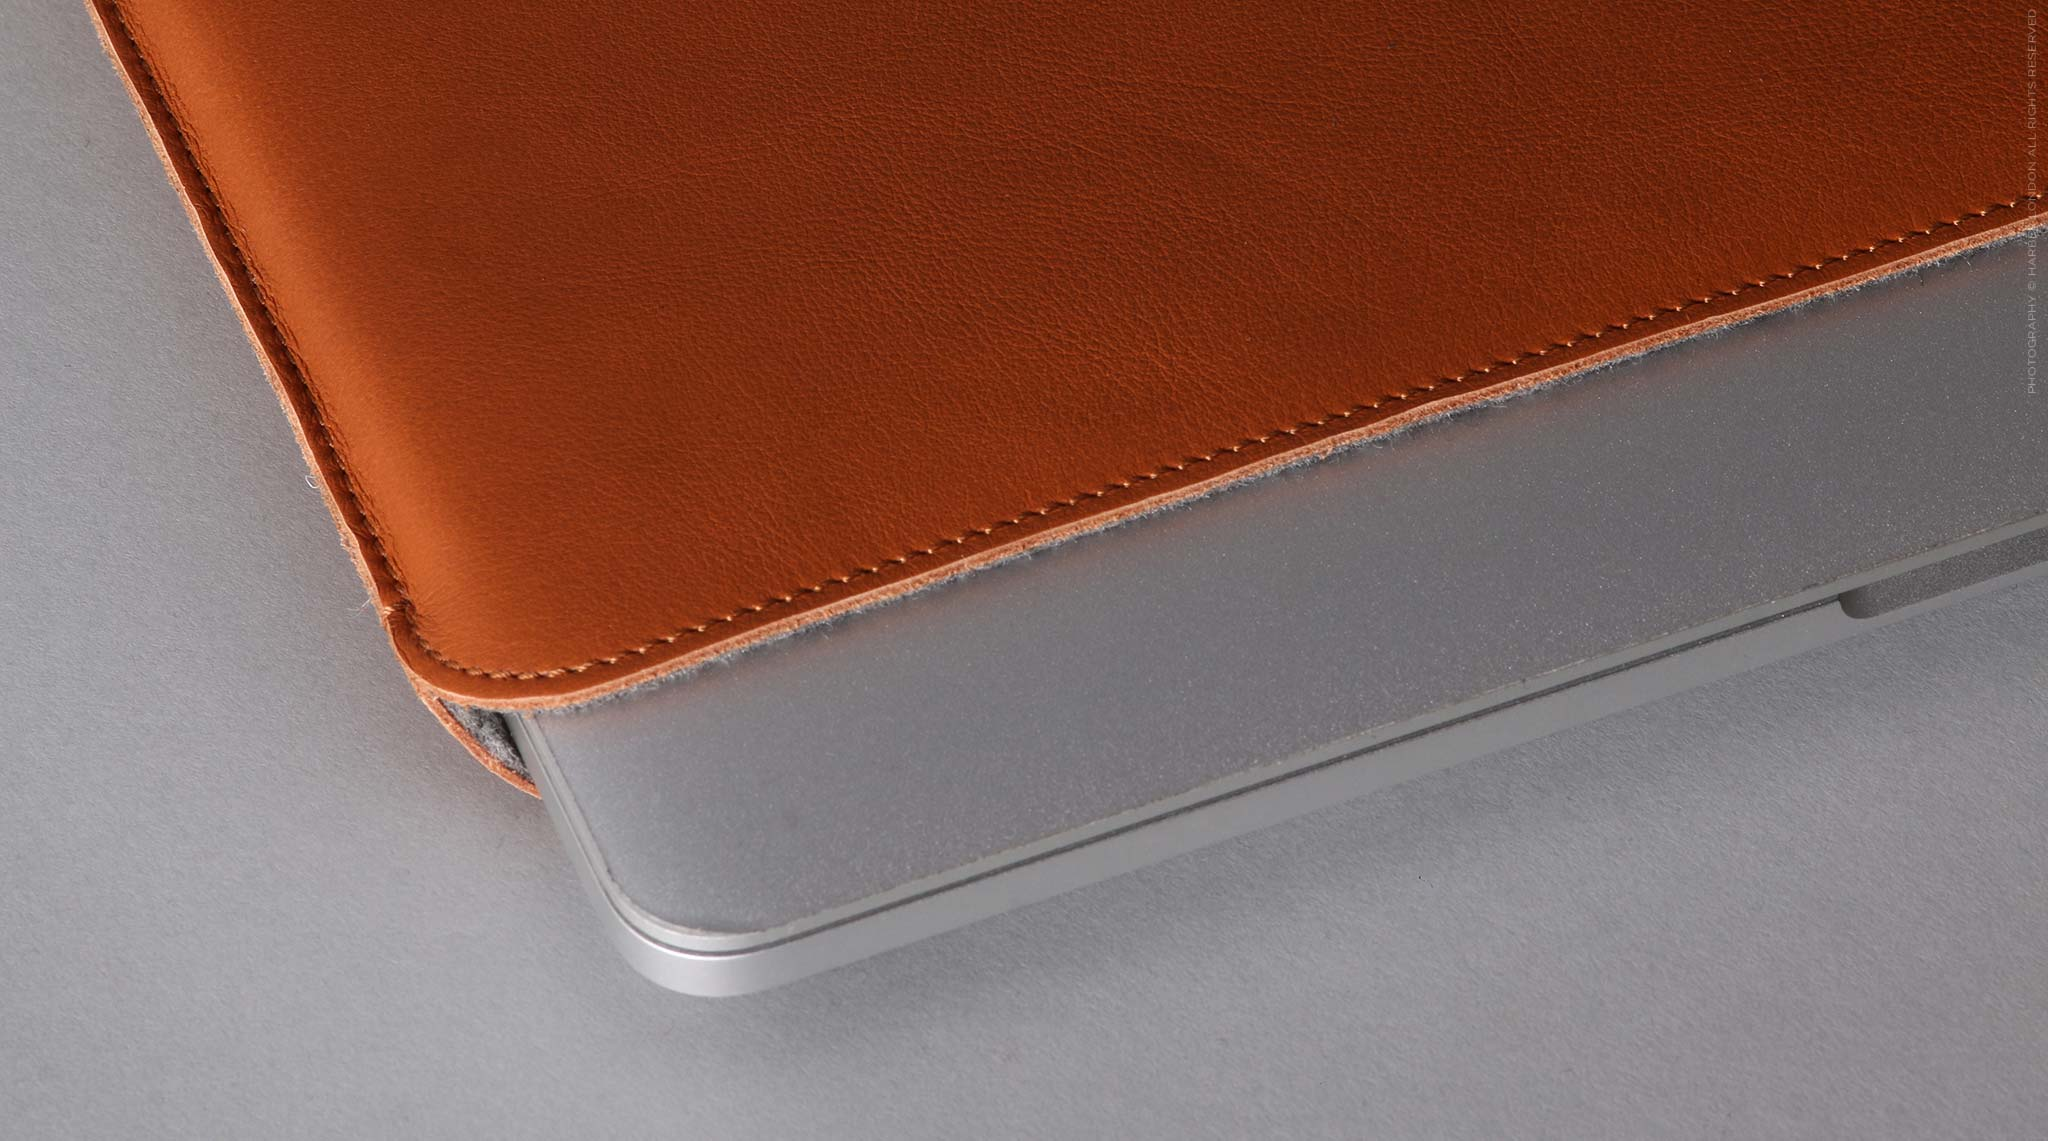 Macbook Sleeve Designed In Uk